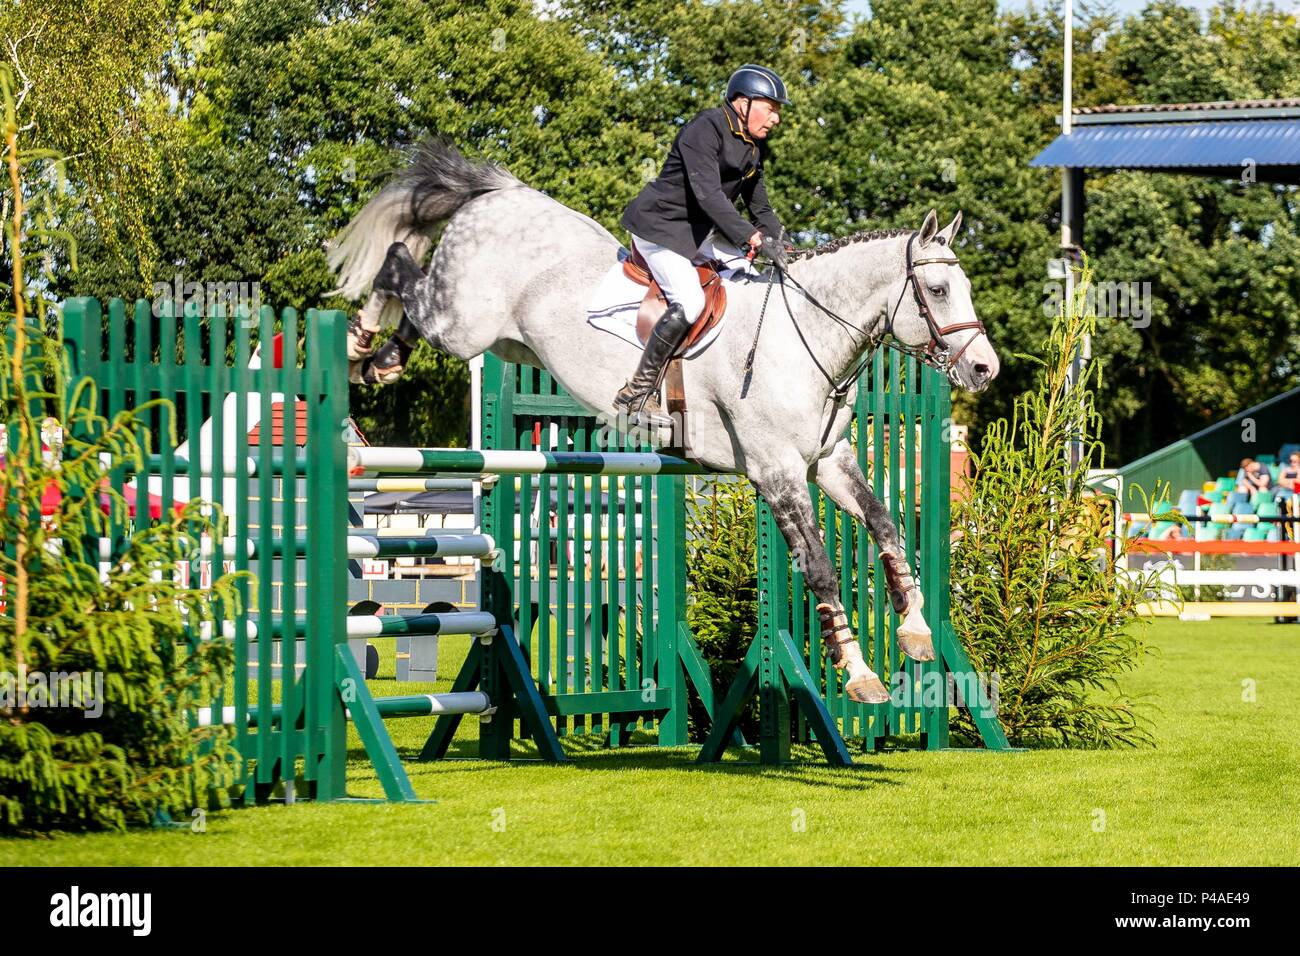 John Whitaker riding Cassinis Chaplin. GBR. The Bunn Lesiure Tankard. CSI4*. The Al Shira'aa Hickstead Derby Meeting. Showjumping. The All England Jumping Course. Hickstead. West Sussex. UK. Day 2. 21/06/2018. - Stock Image